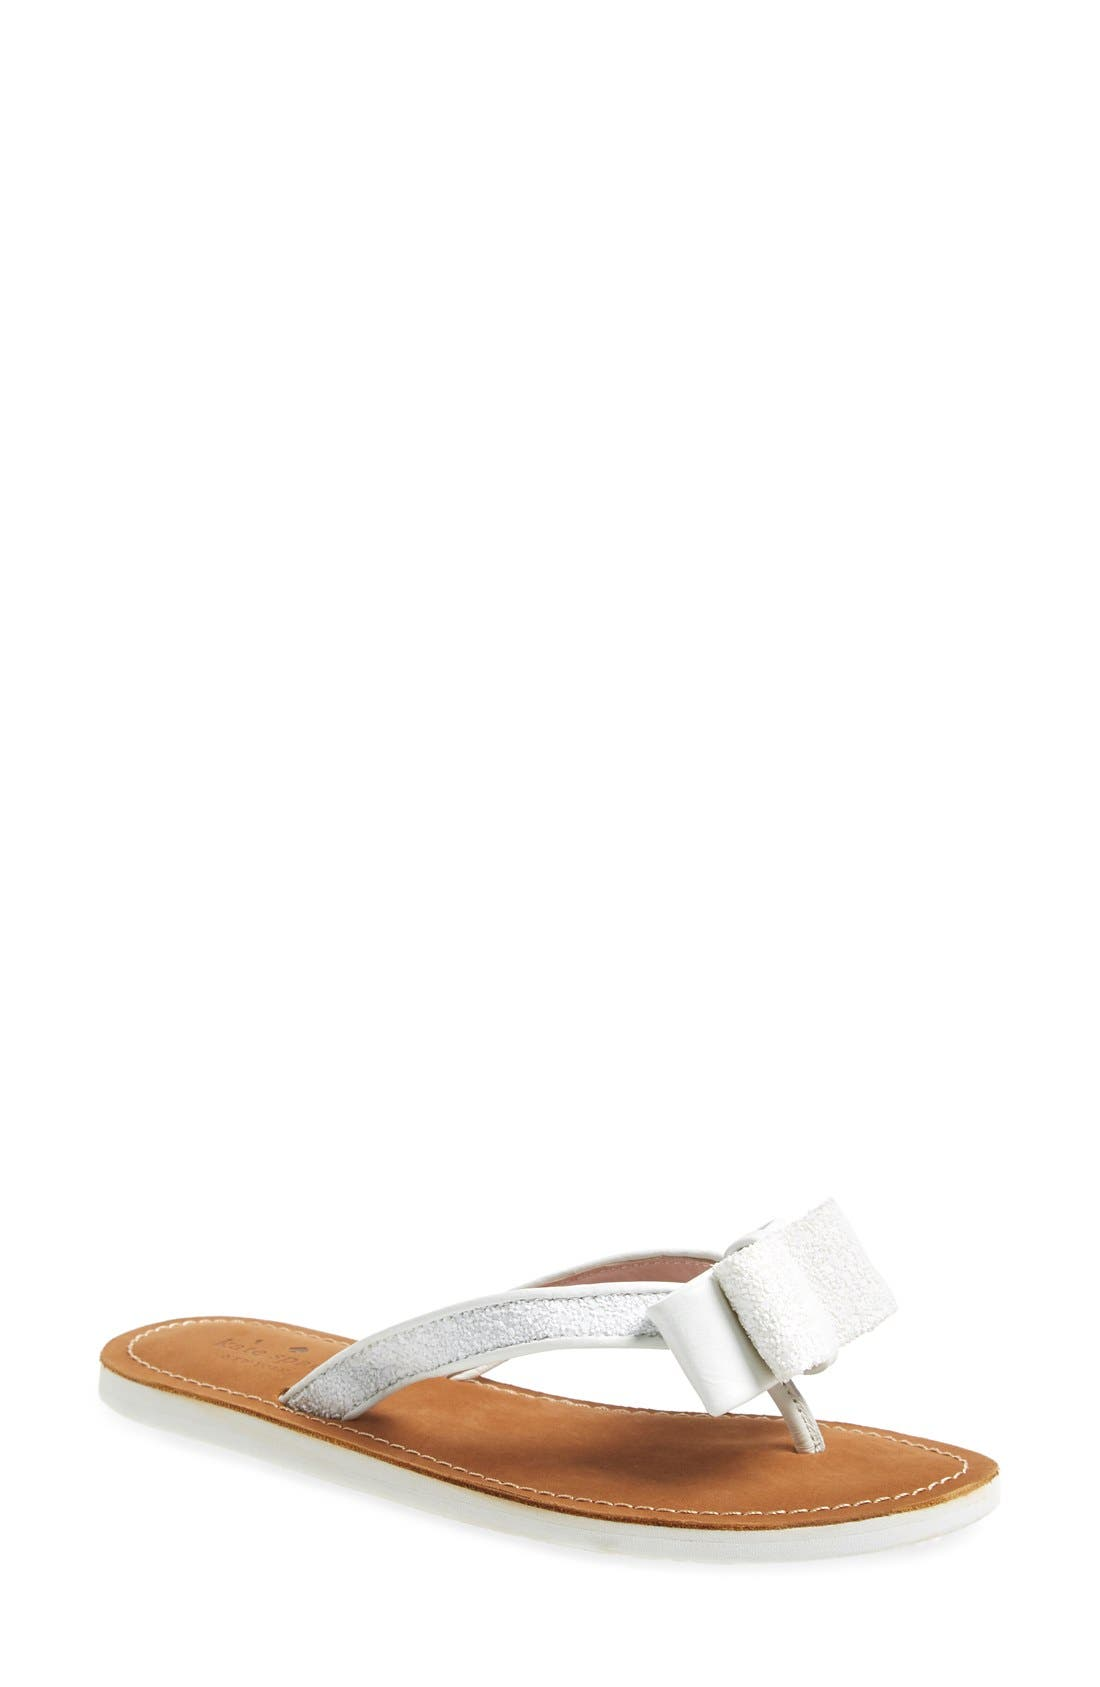 Main Image - kate spade new york 'icarda' glitter flip flop (Women)